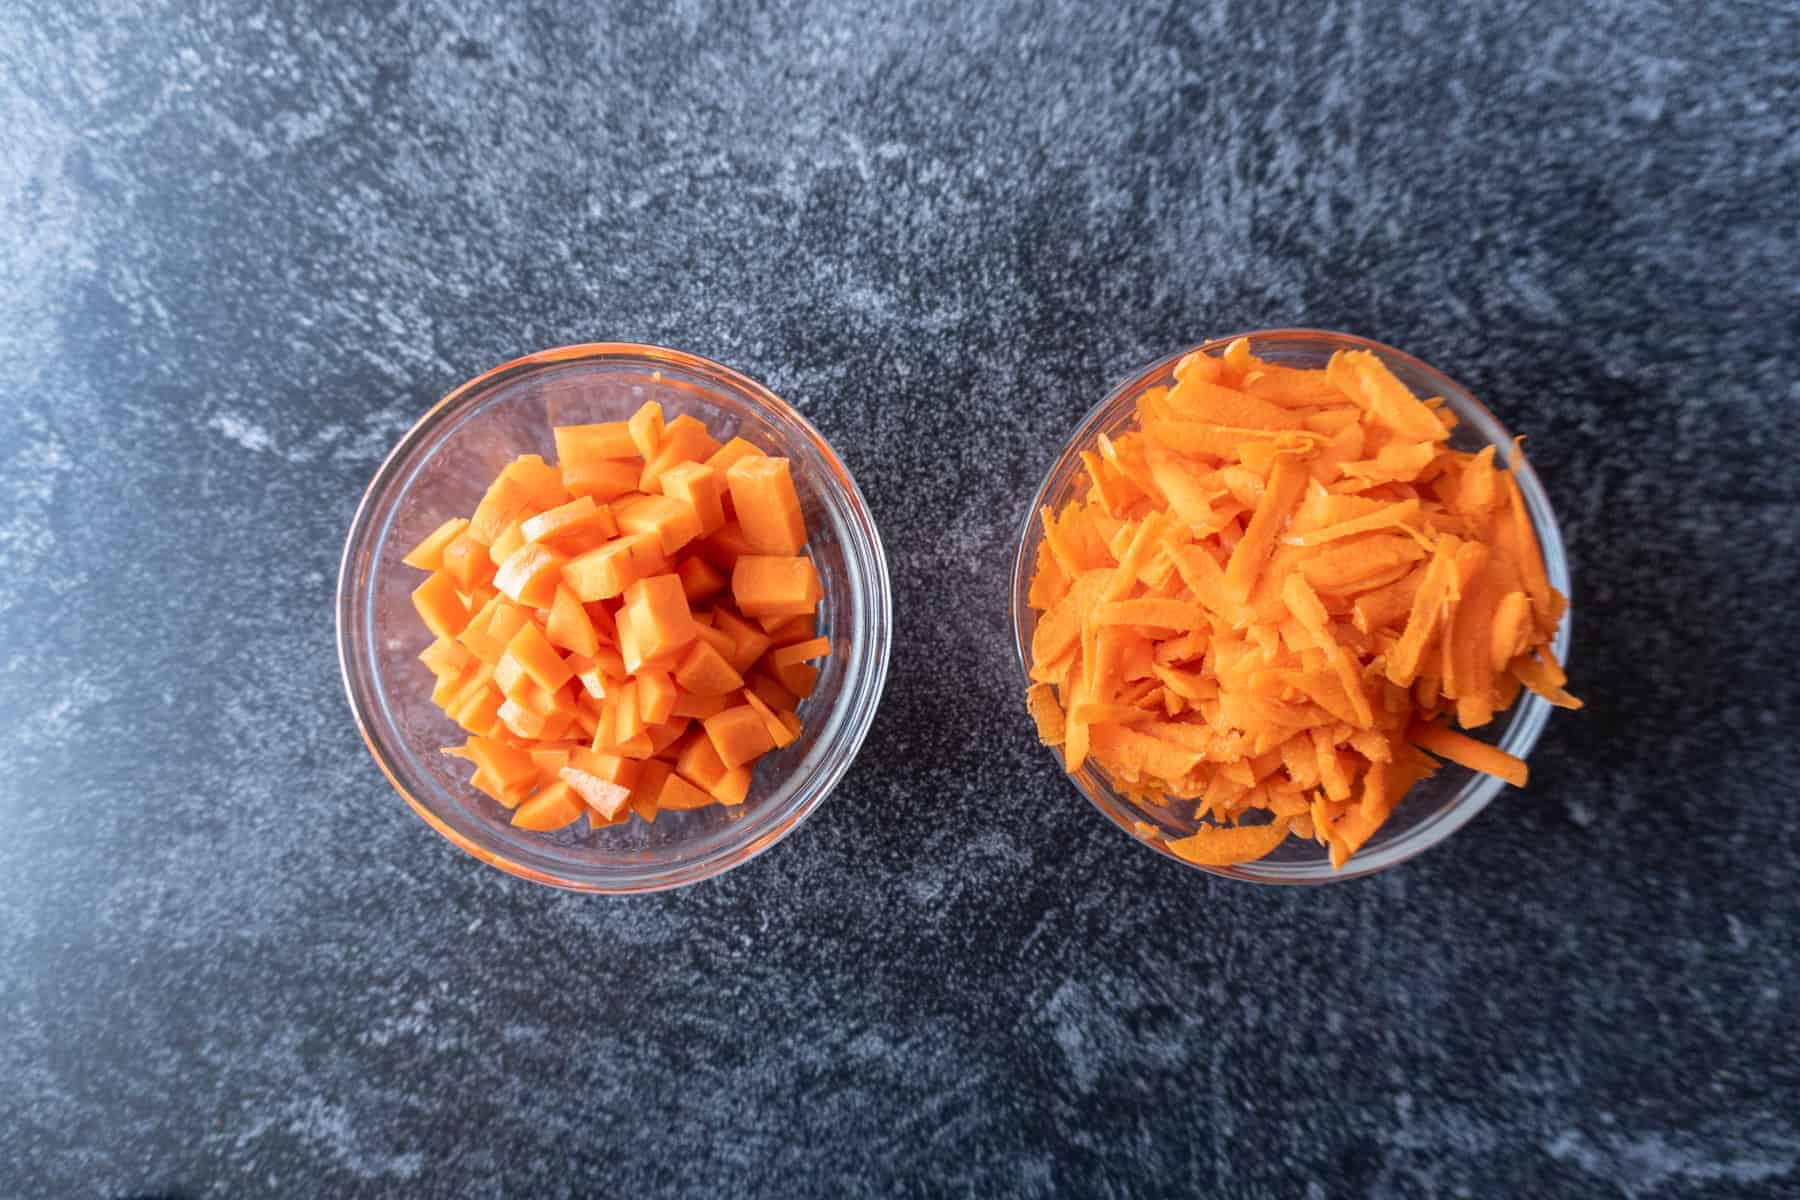 Carrots cubed vs shredded